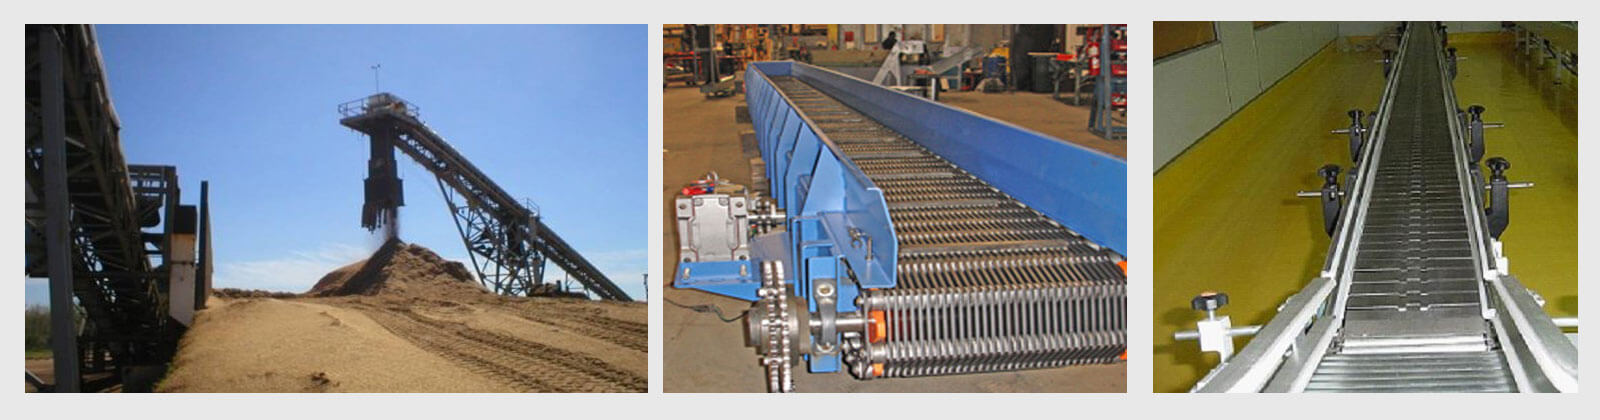 Drag Flow Chain Conveyors